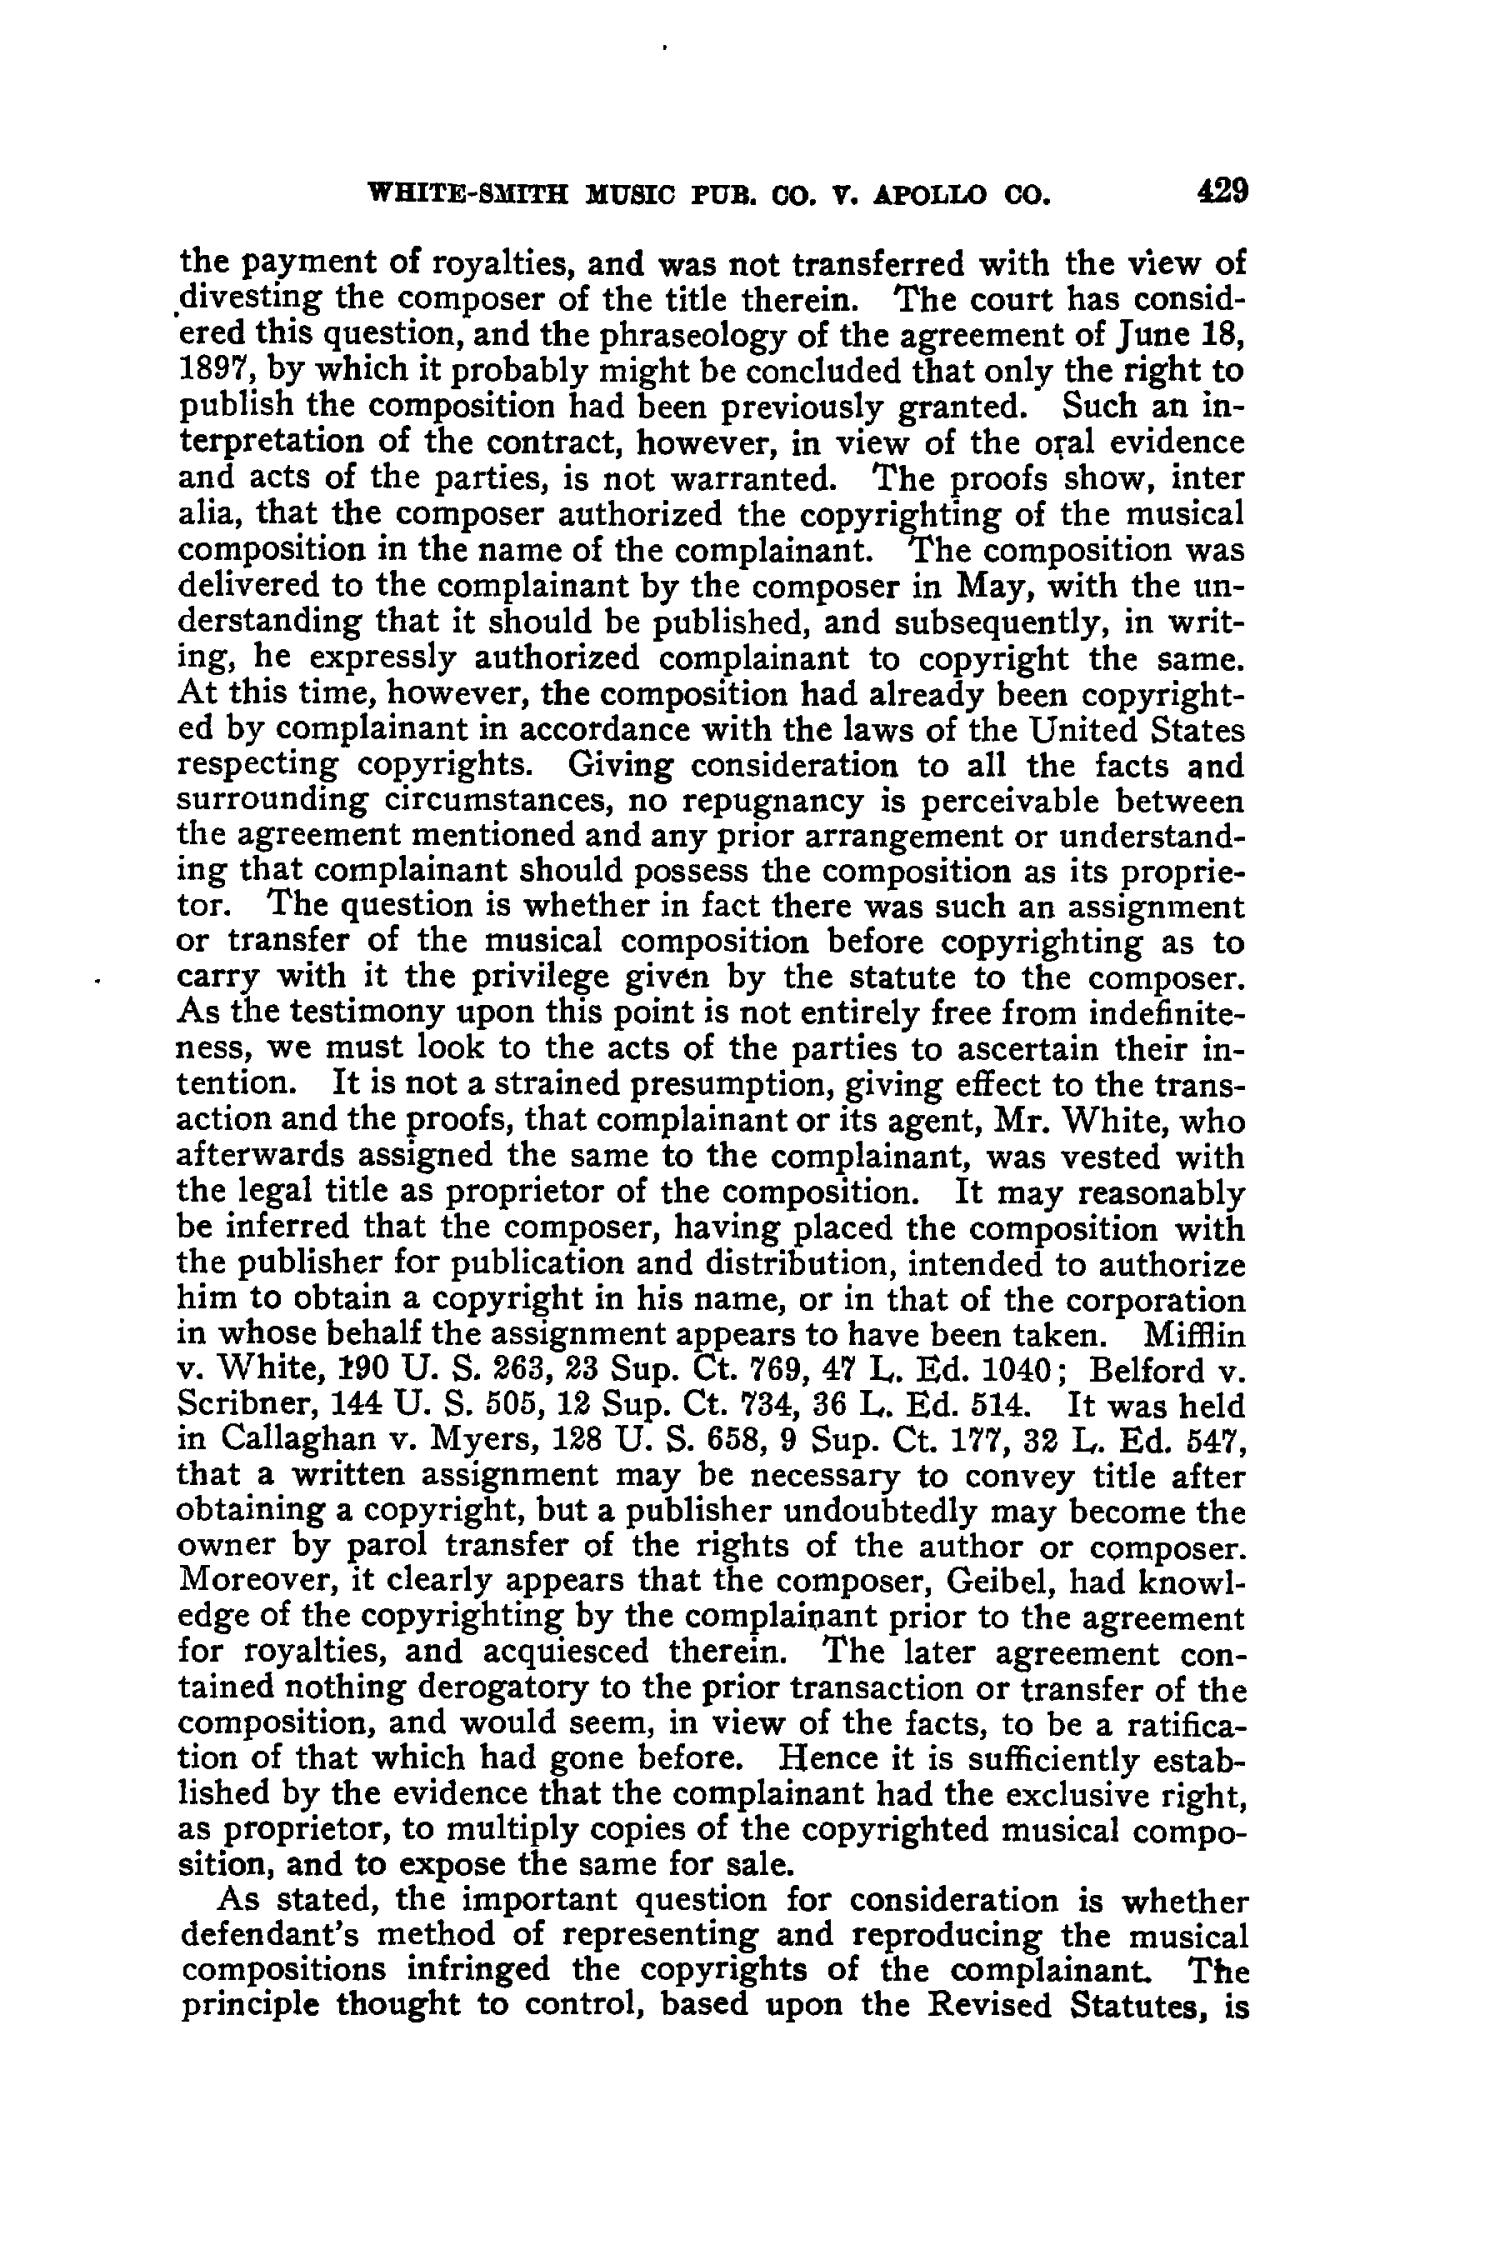 The Federal Reporter. Volume 139 Cases Argued and Determined in the Circuit Courts of Appeals and Circuit and District Courts of the United States. September-December, 1905.                                                                                                      429